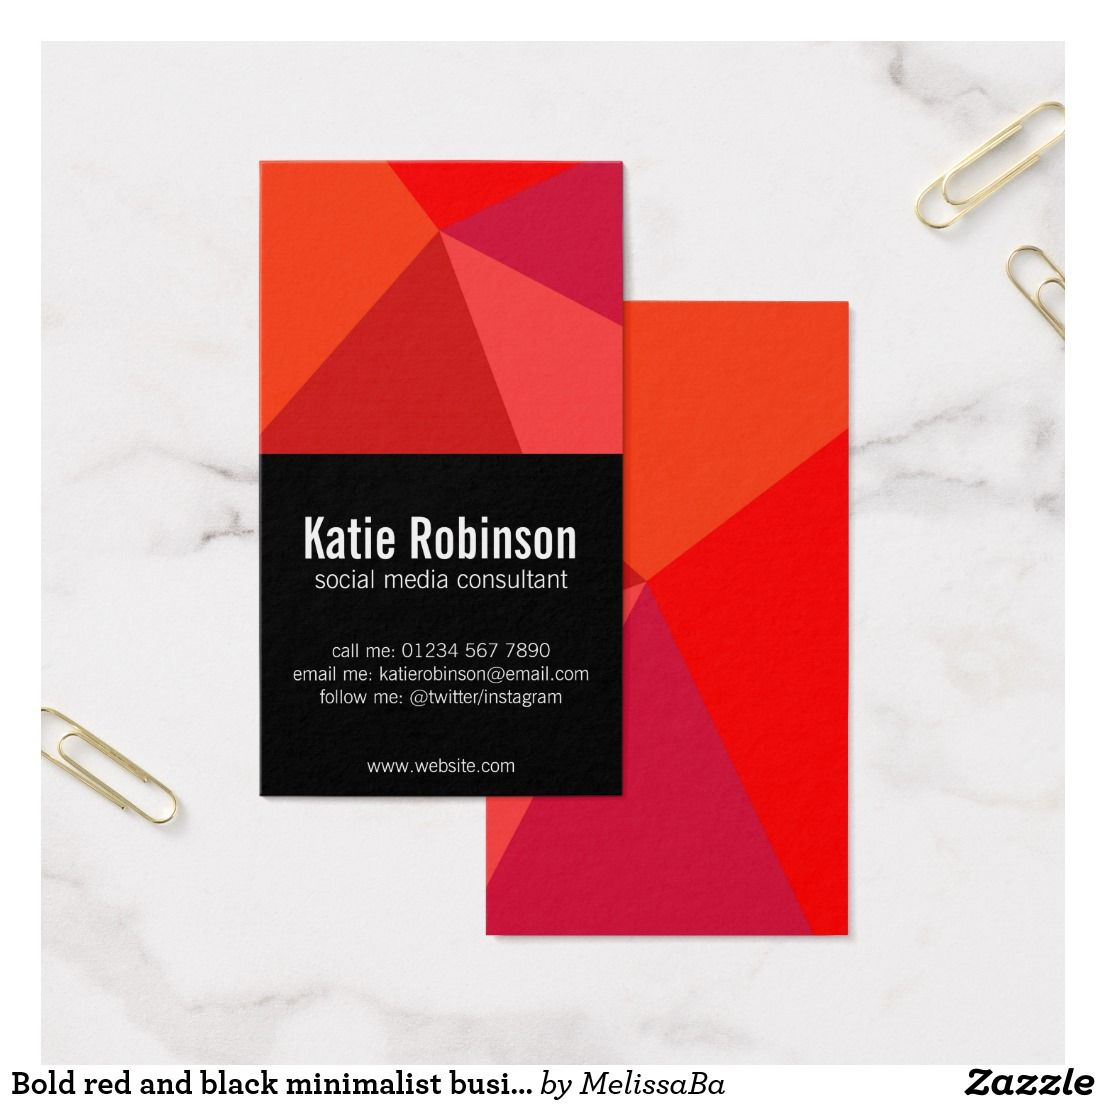 Bold red and black minimalist business card business pinterest bold red and black minimalist business card reheart Images